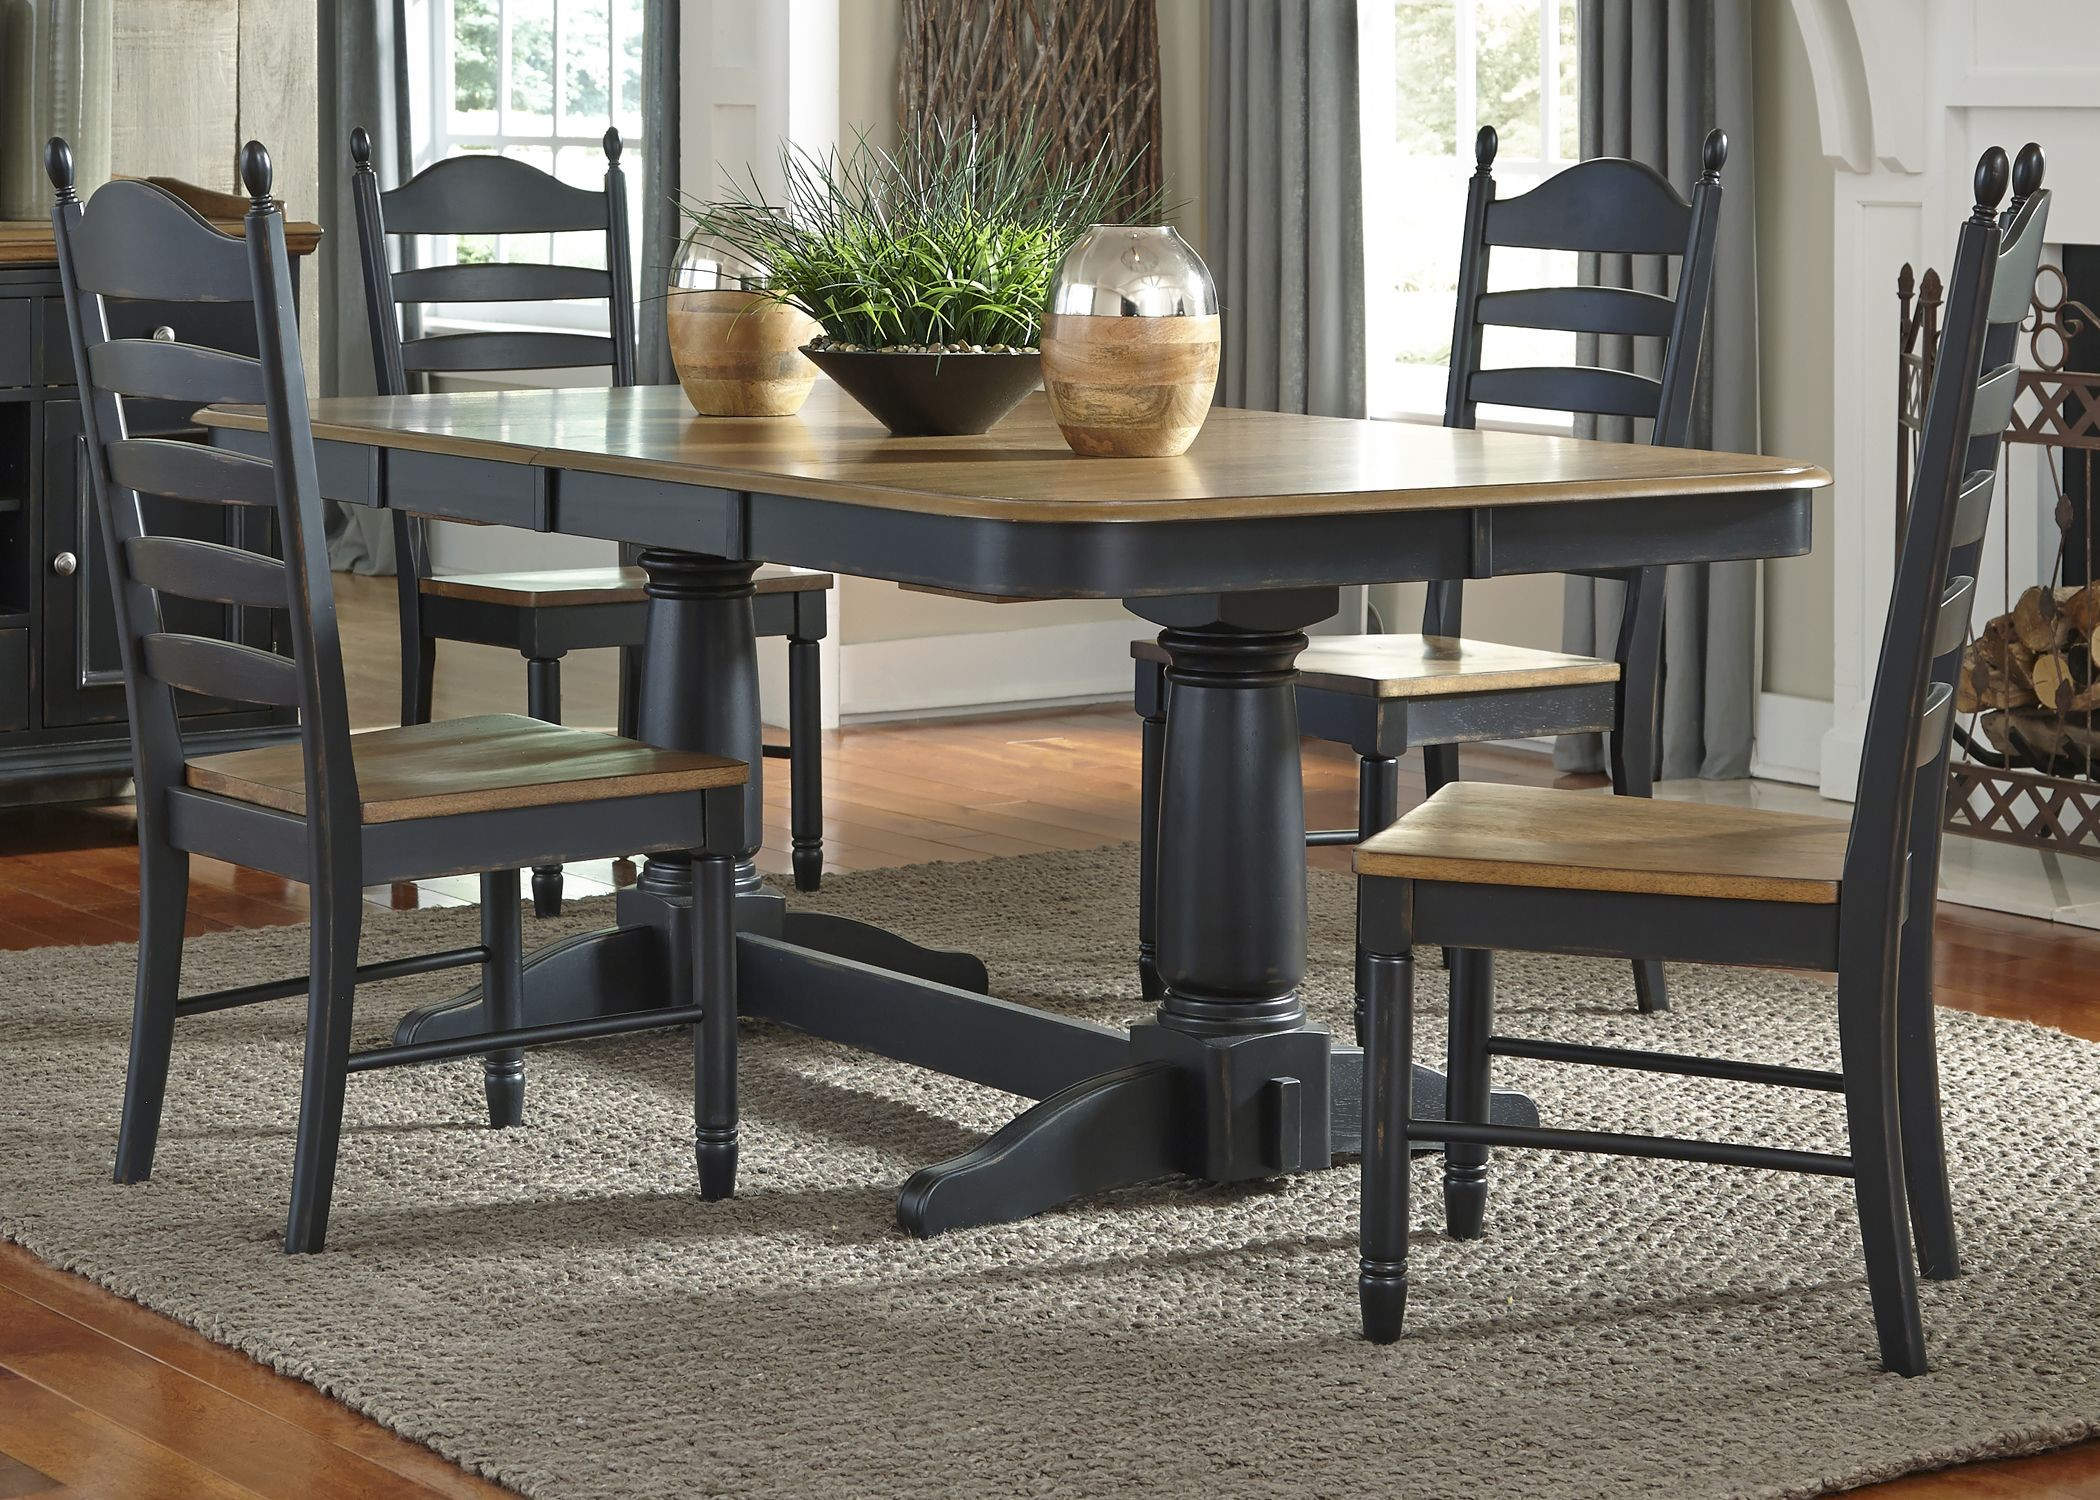 Springfield Ii Honey And Black Extendable Double Pedestal Regarding 2017 47'' Pedestal Dining Tables (View 3 of 15)